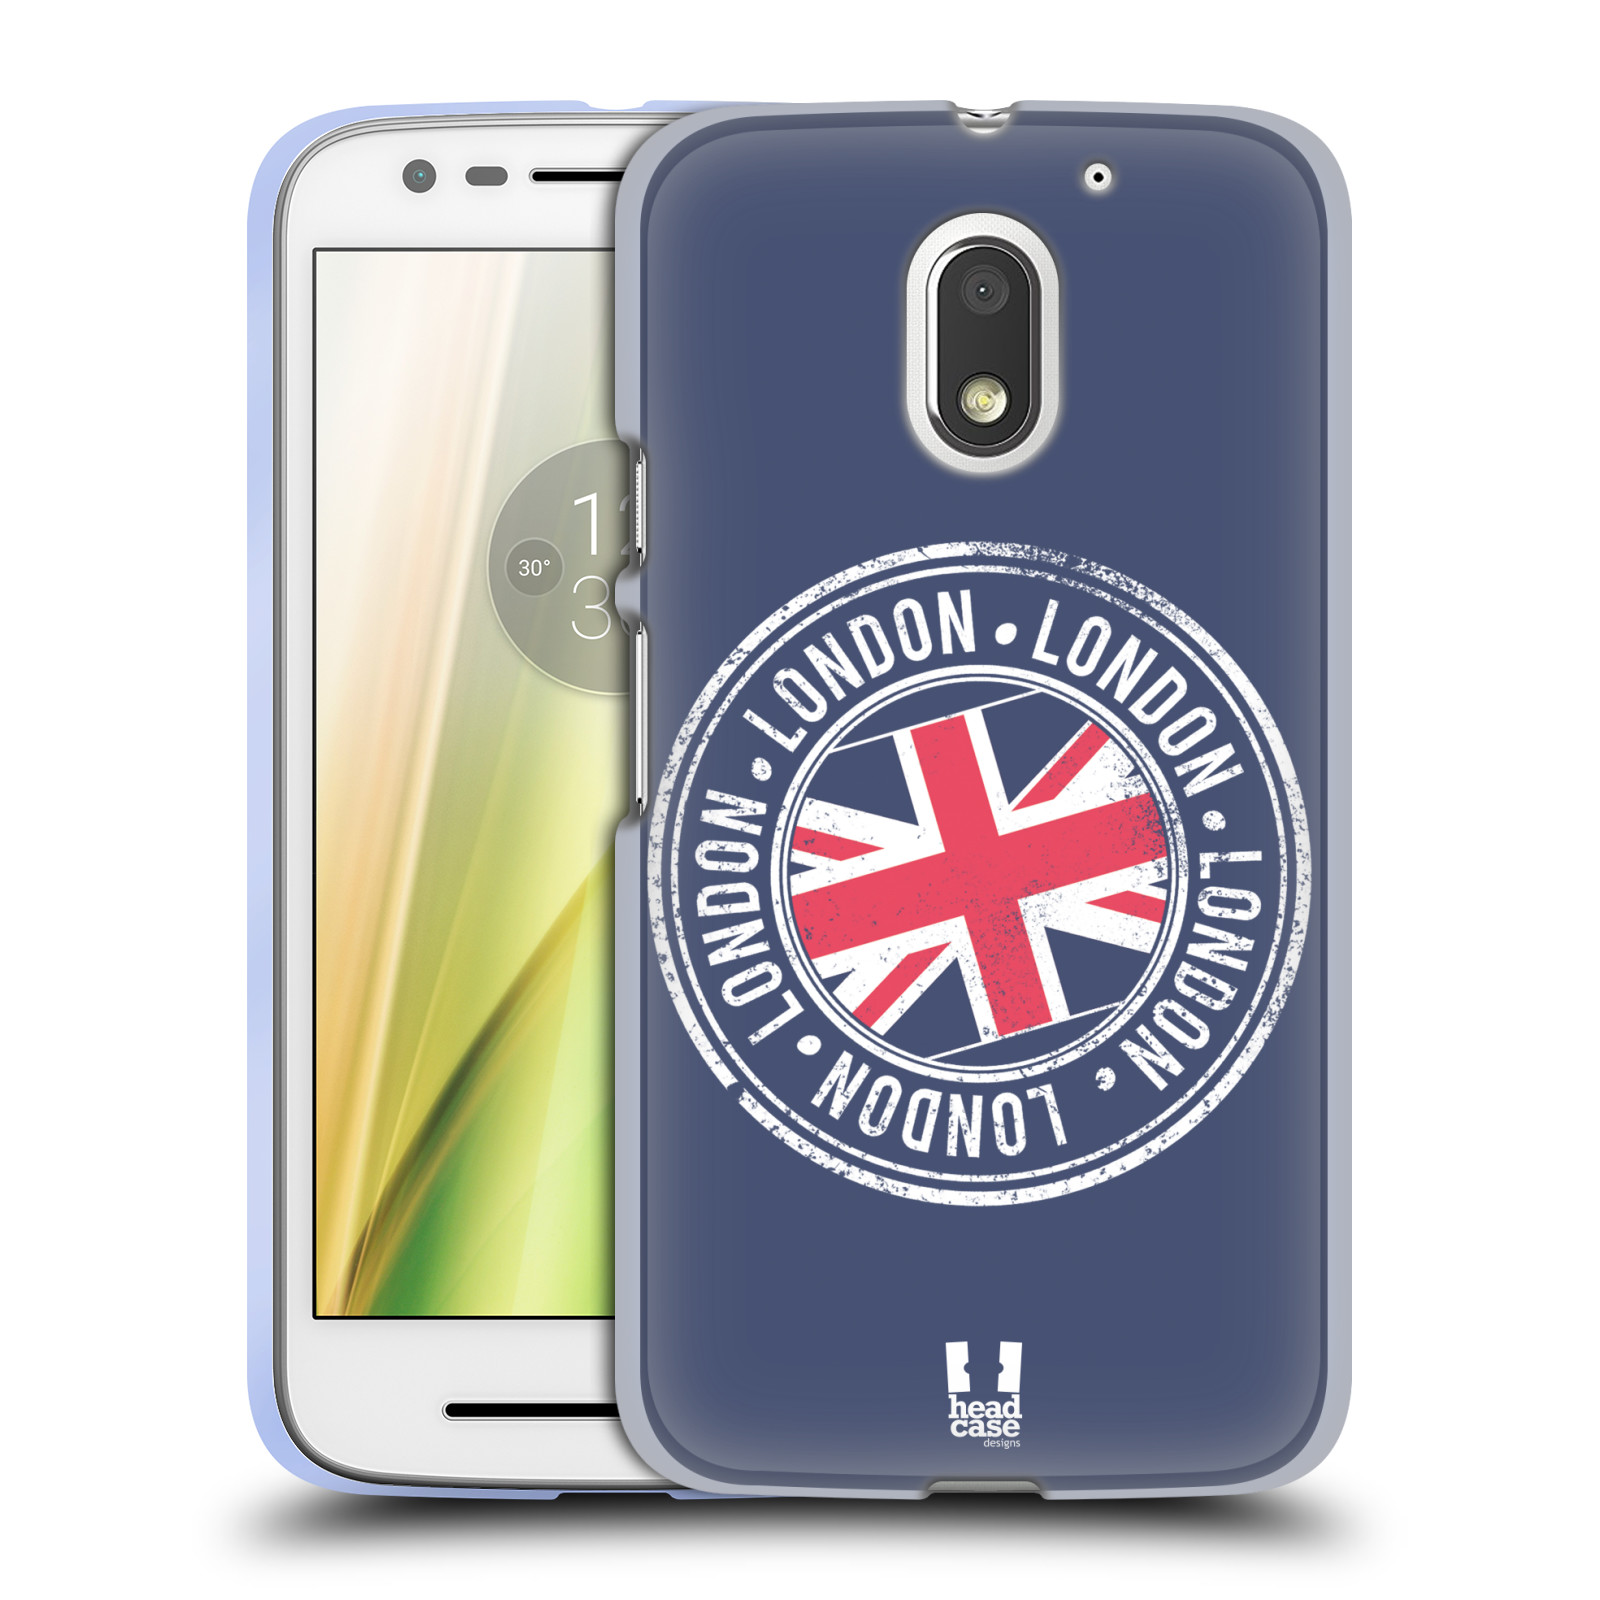 HEAD-CASE-ESTAMPES-DE-LONDRES-ETUI-COQUE-EN-GEL-POUR-MOTOROLA-MOTO-E3-POWER